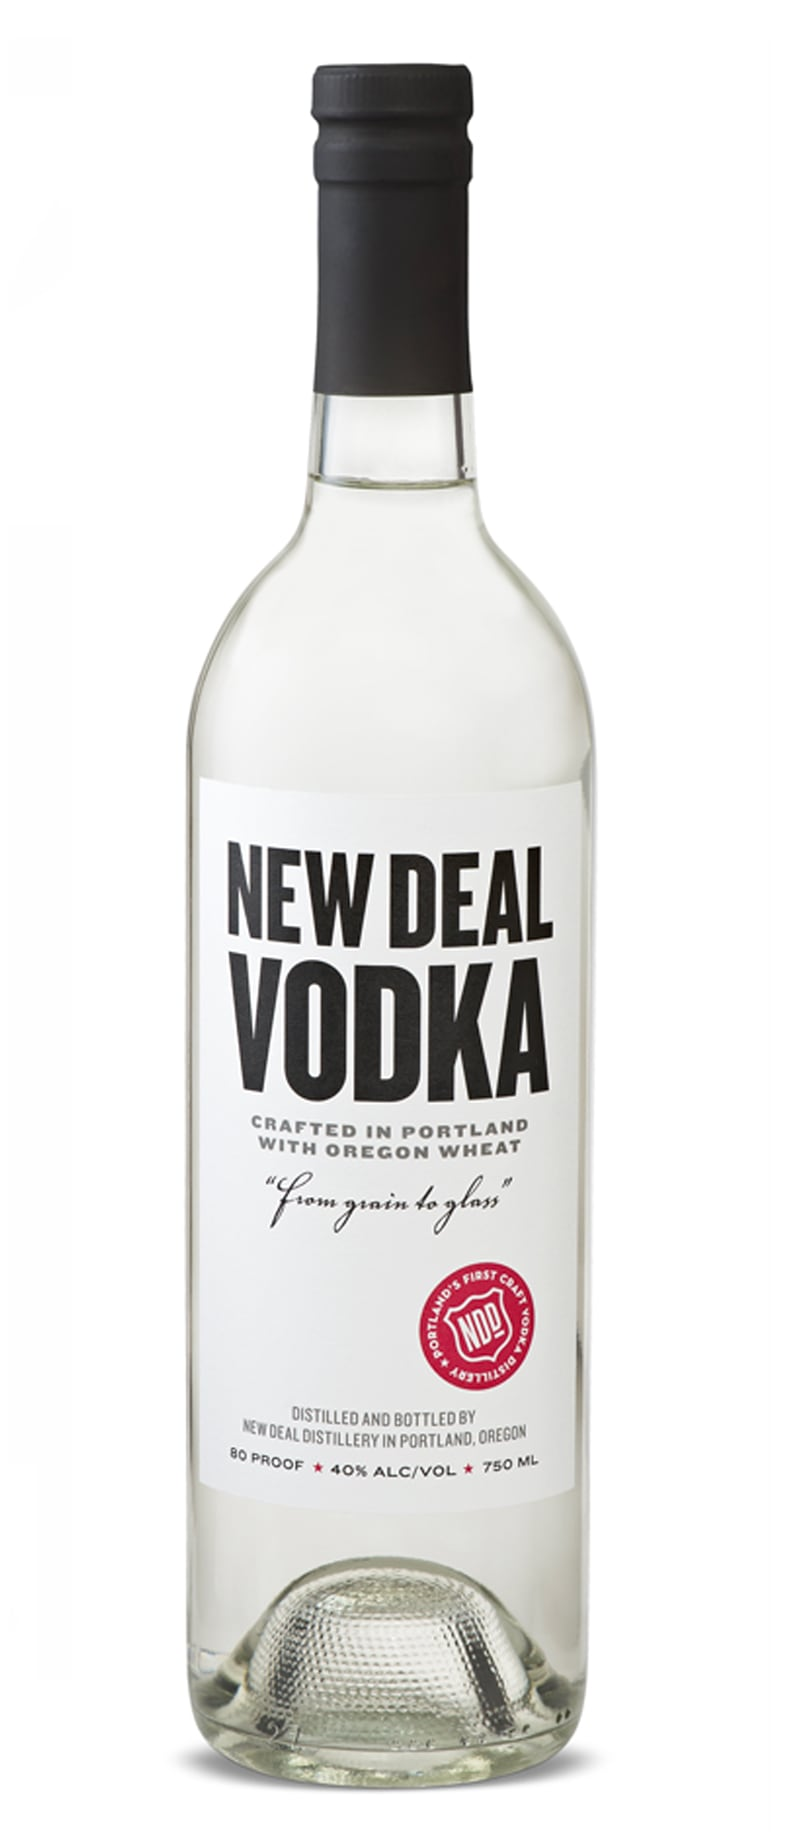 New Deal Vodka